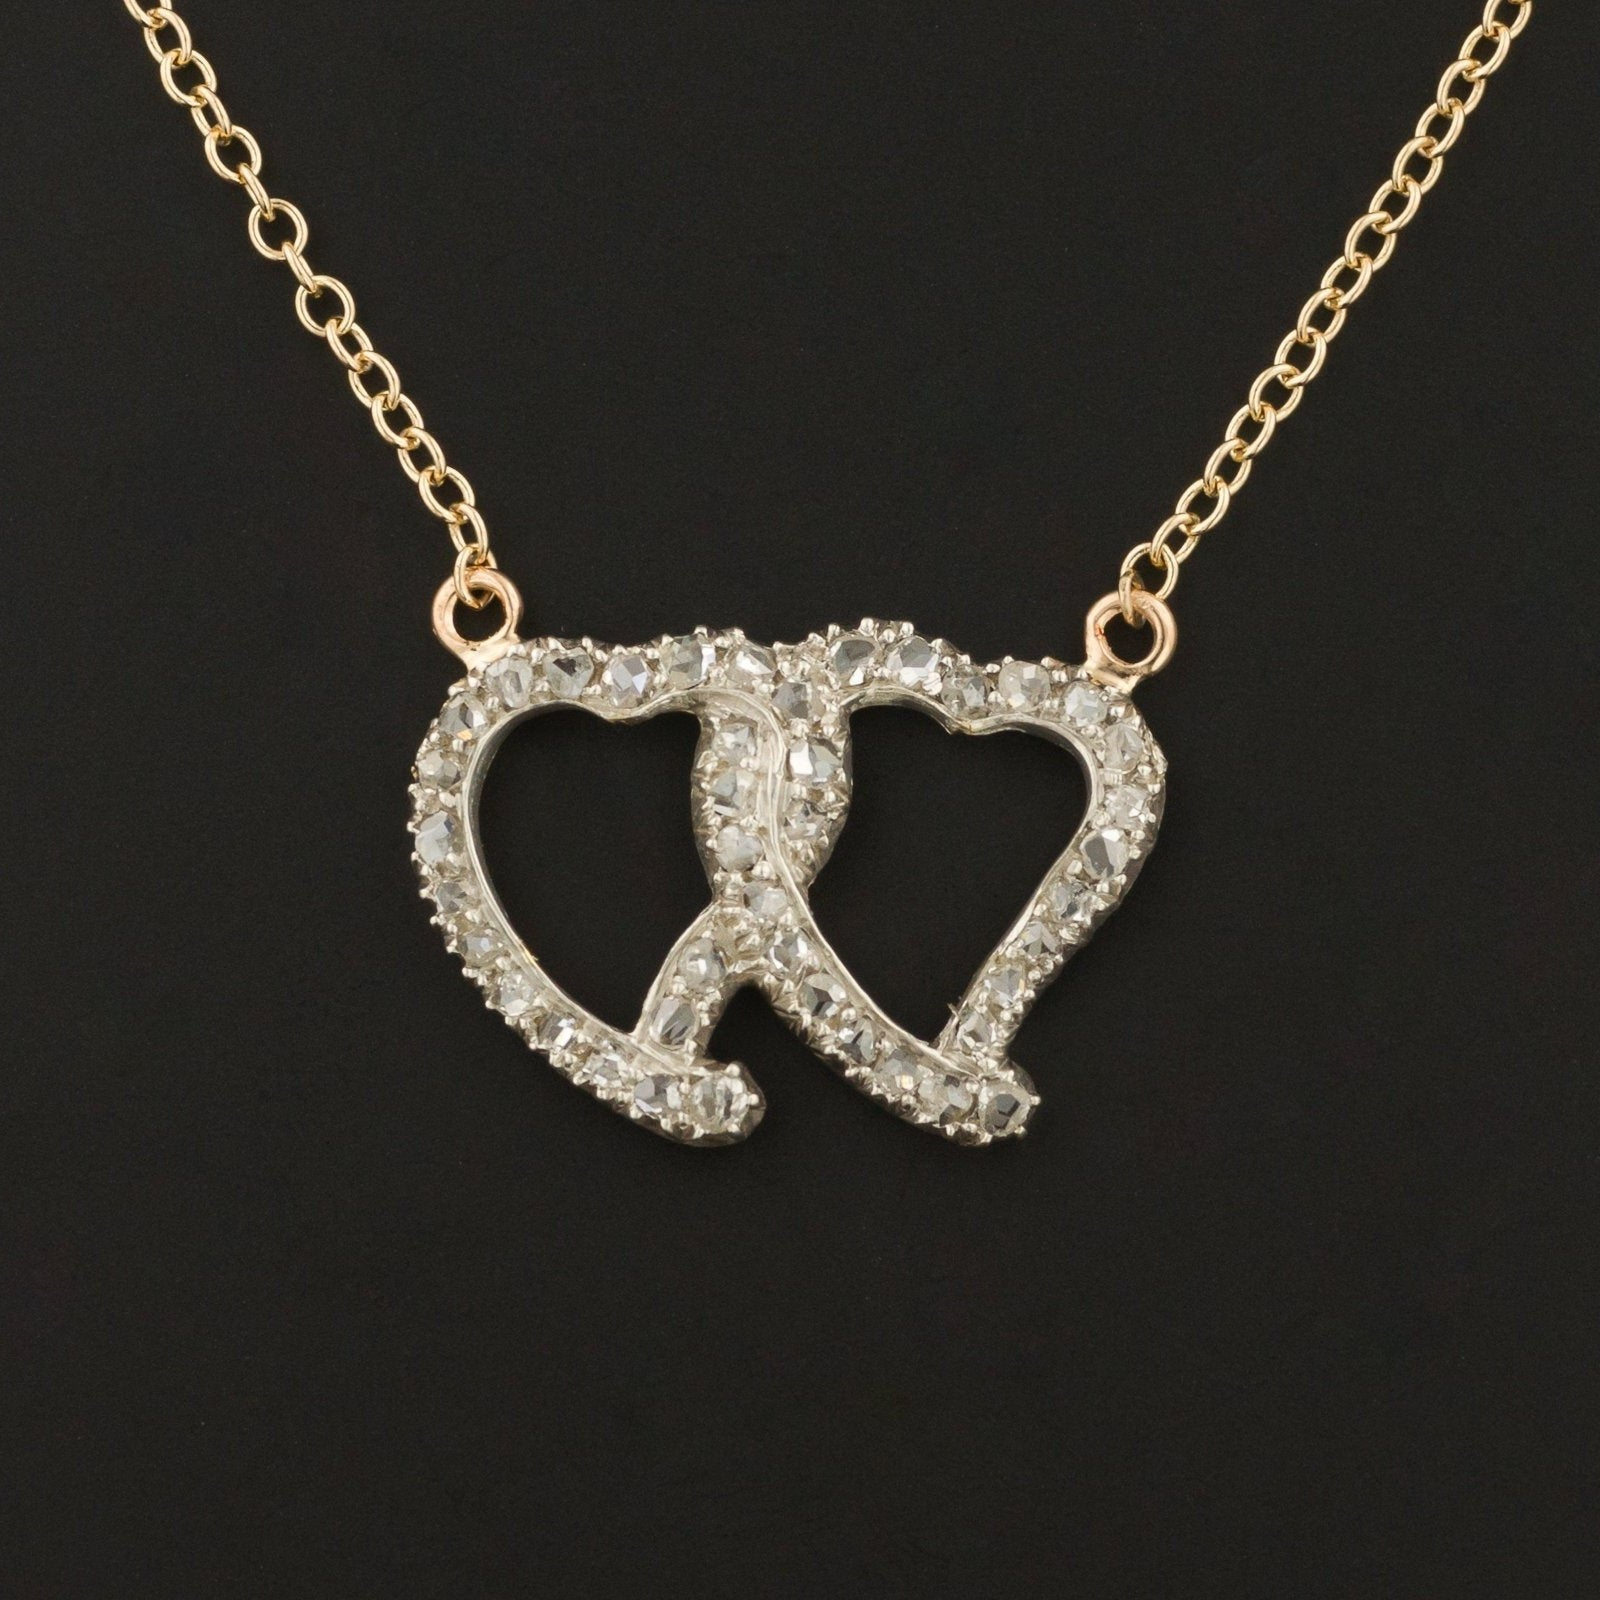 Diamond Entwined Hearts Necklace | Diamond Double Heart Necklace |  Love Token Necklace | Unique Necklace | 14k Gold Necklace